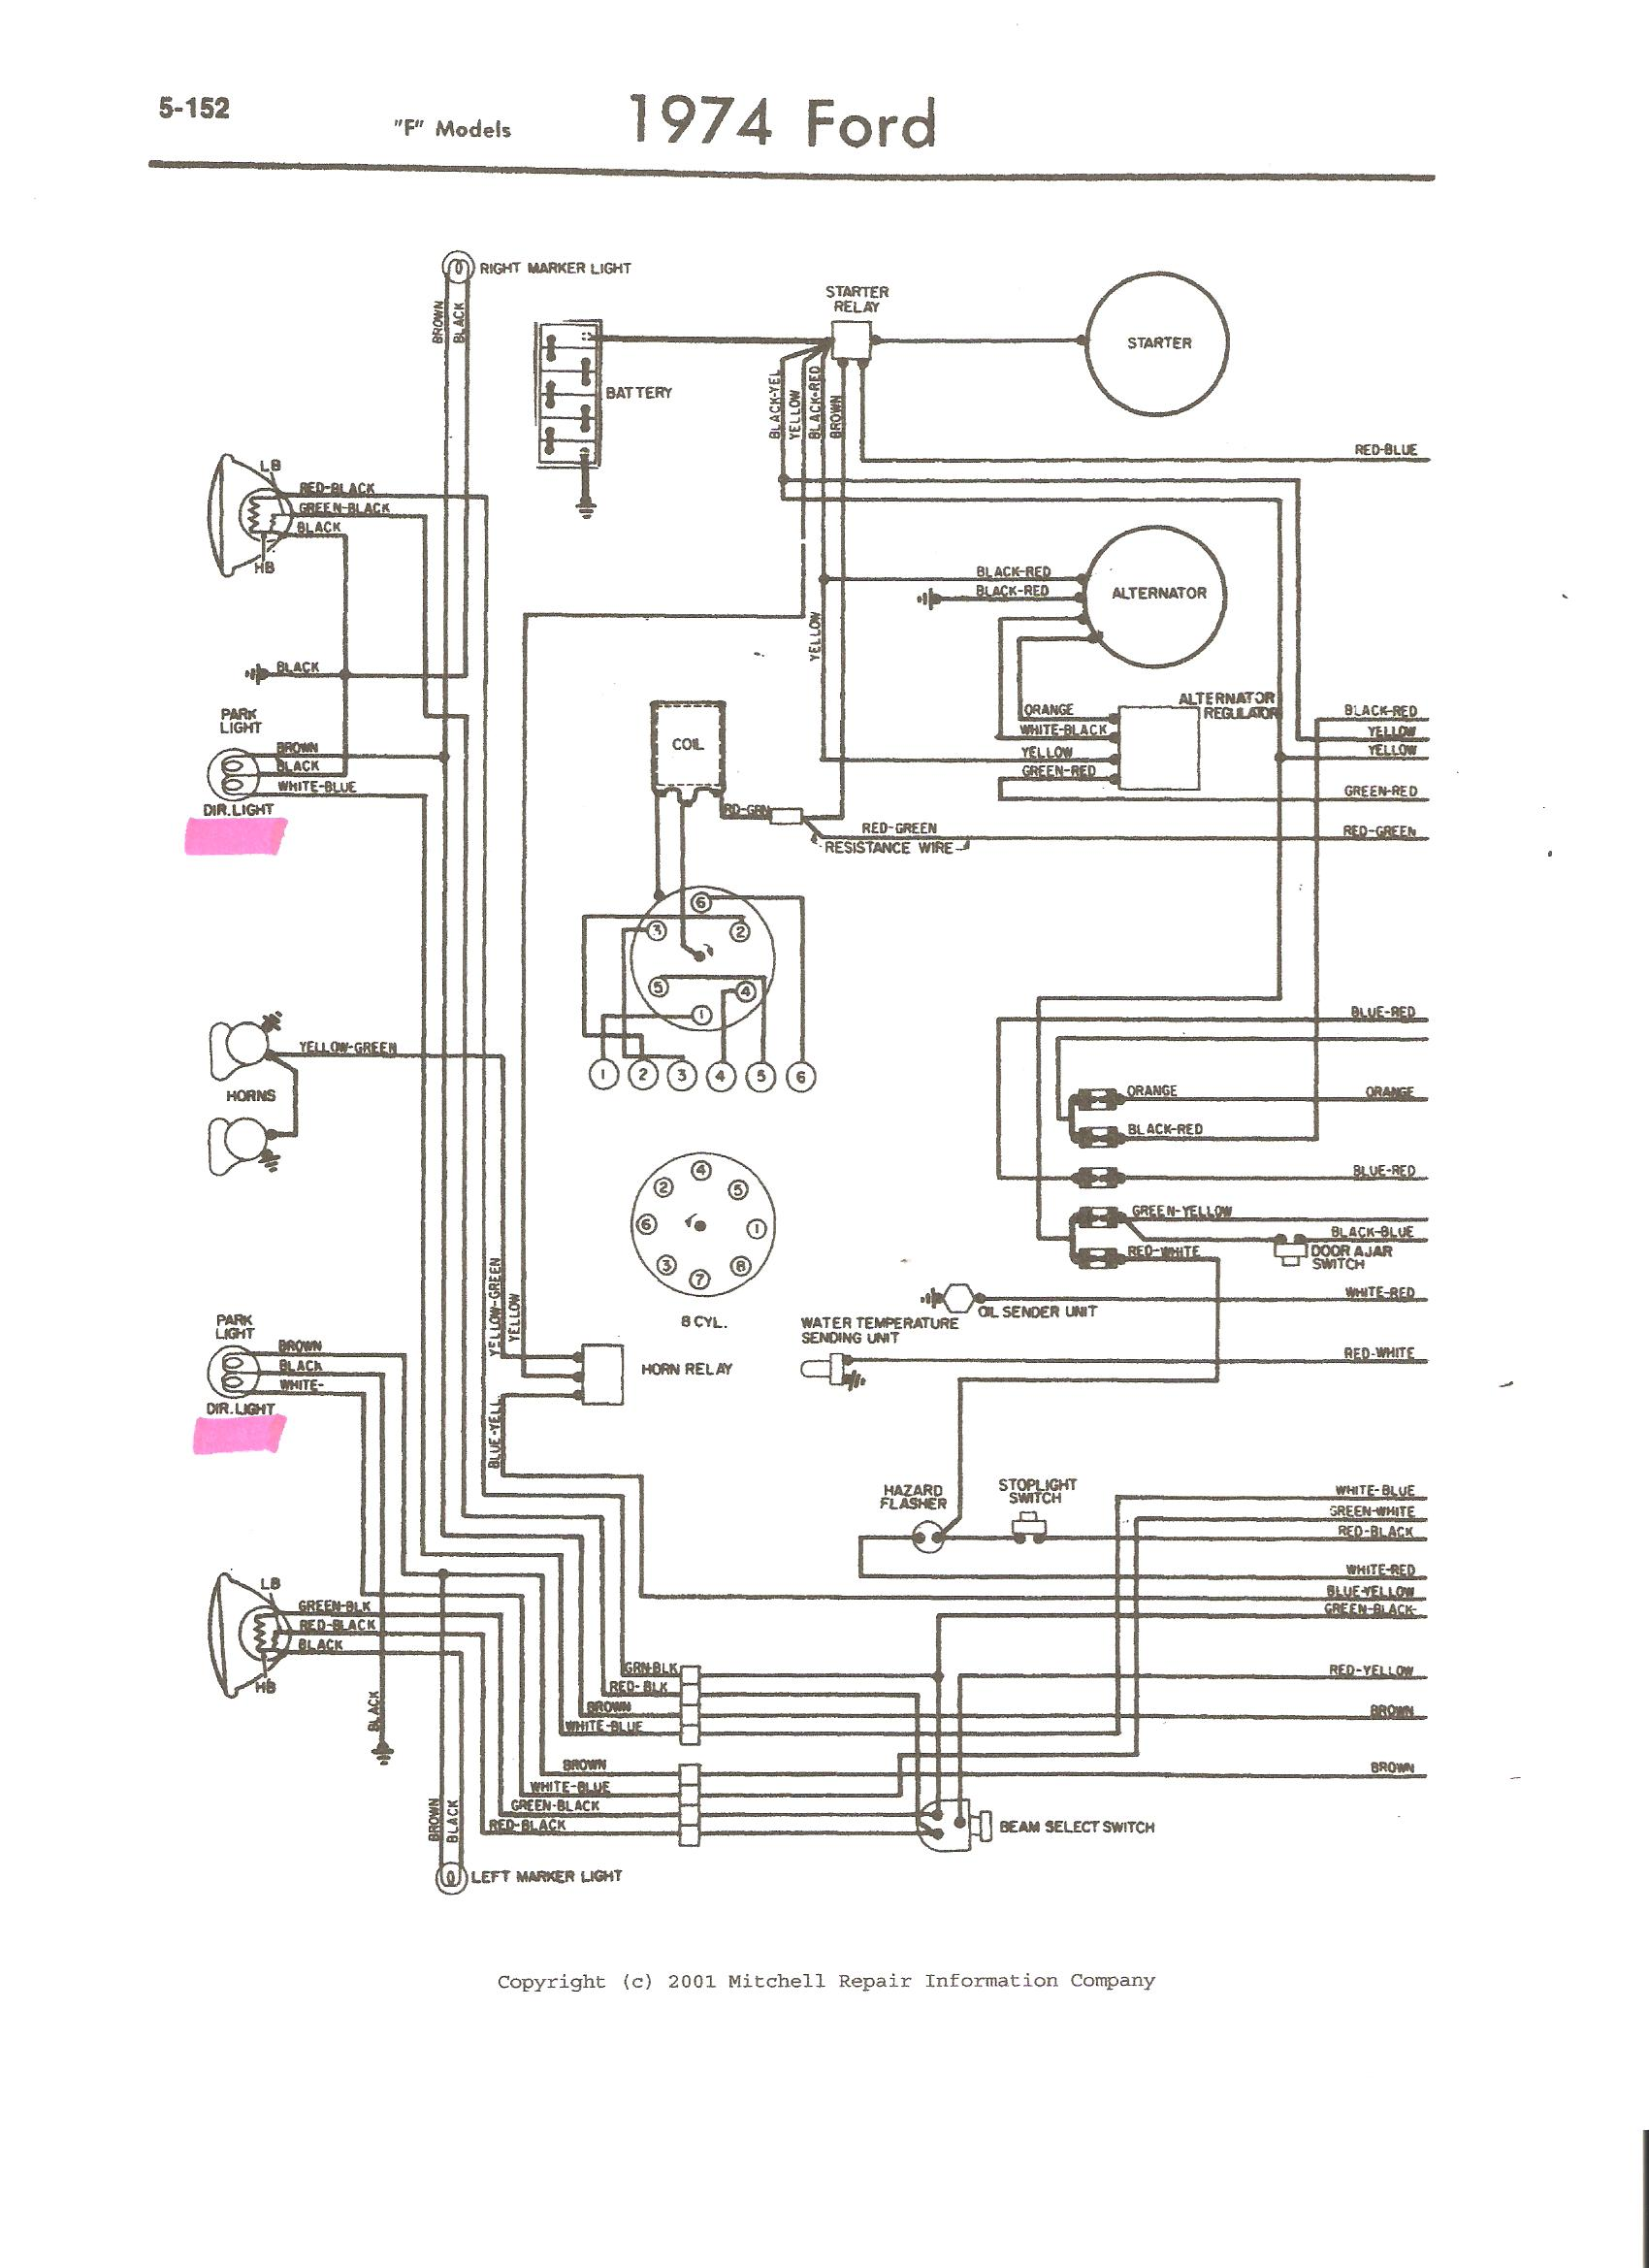 ididit steering column turn signal wiring diagram